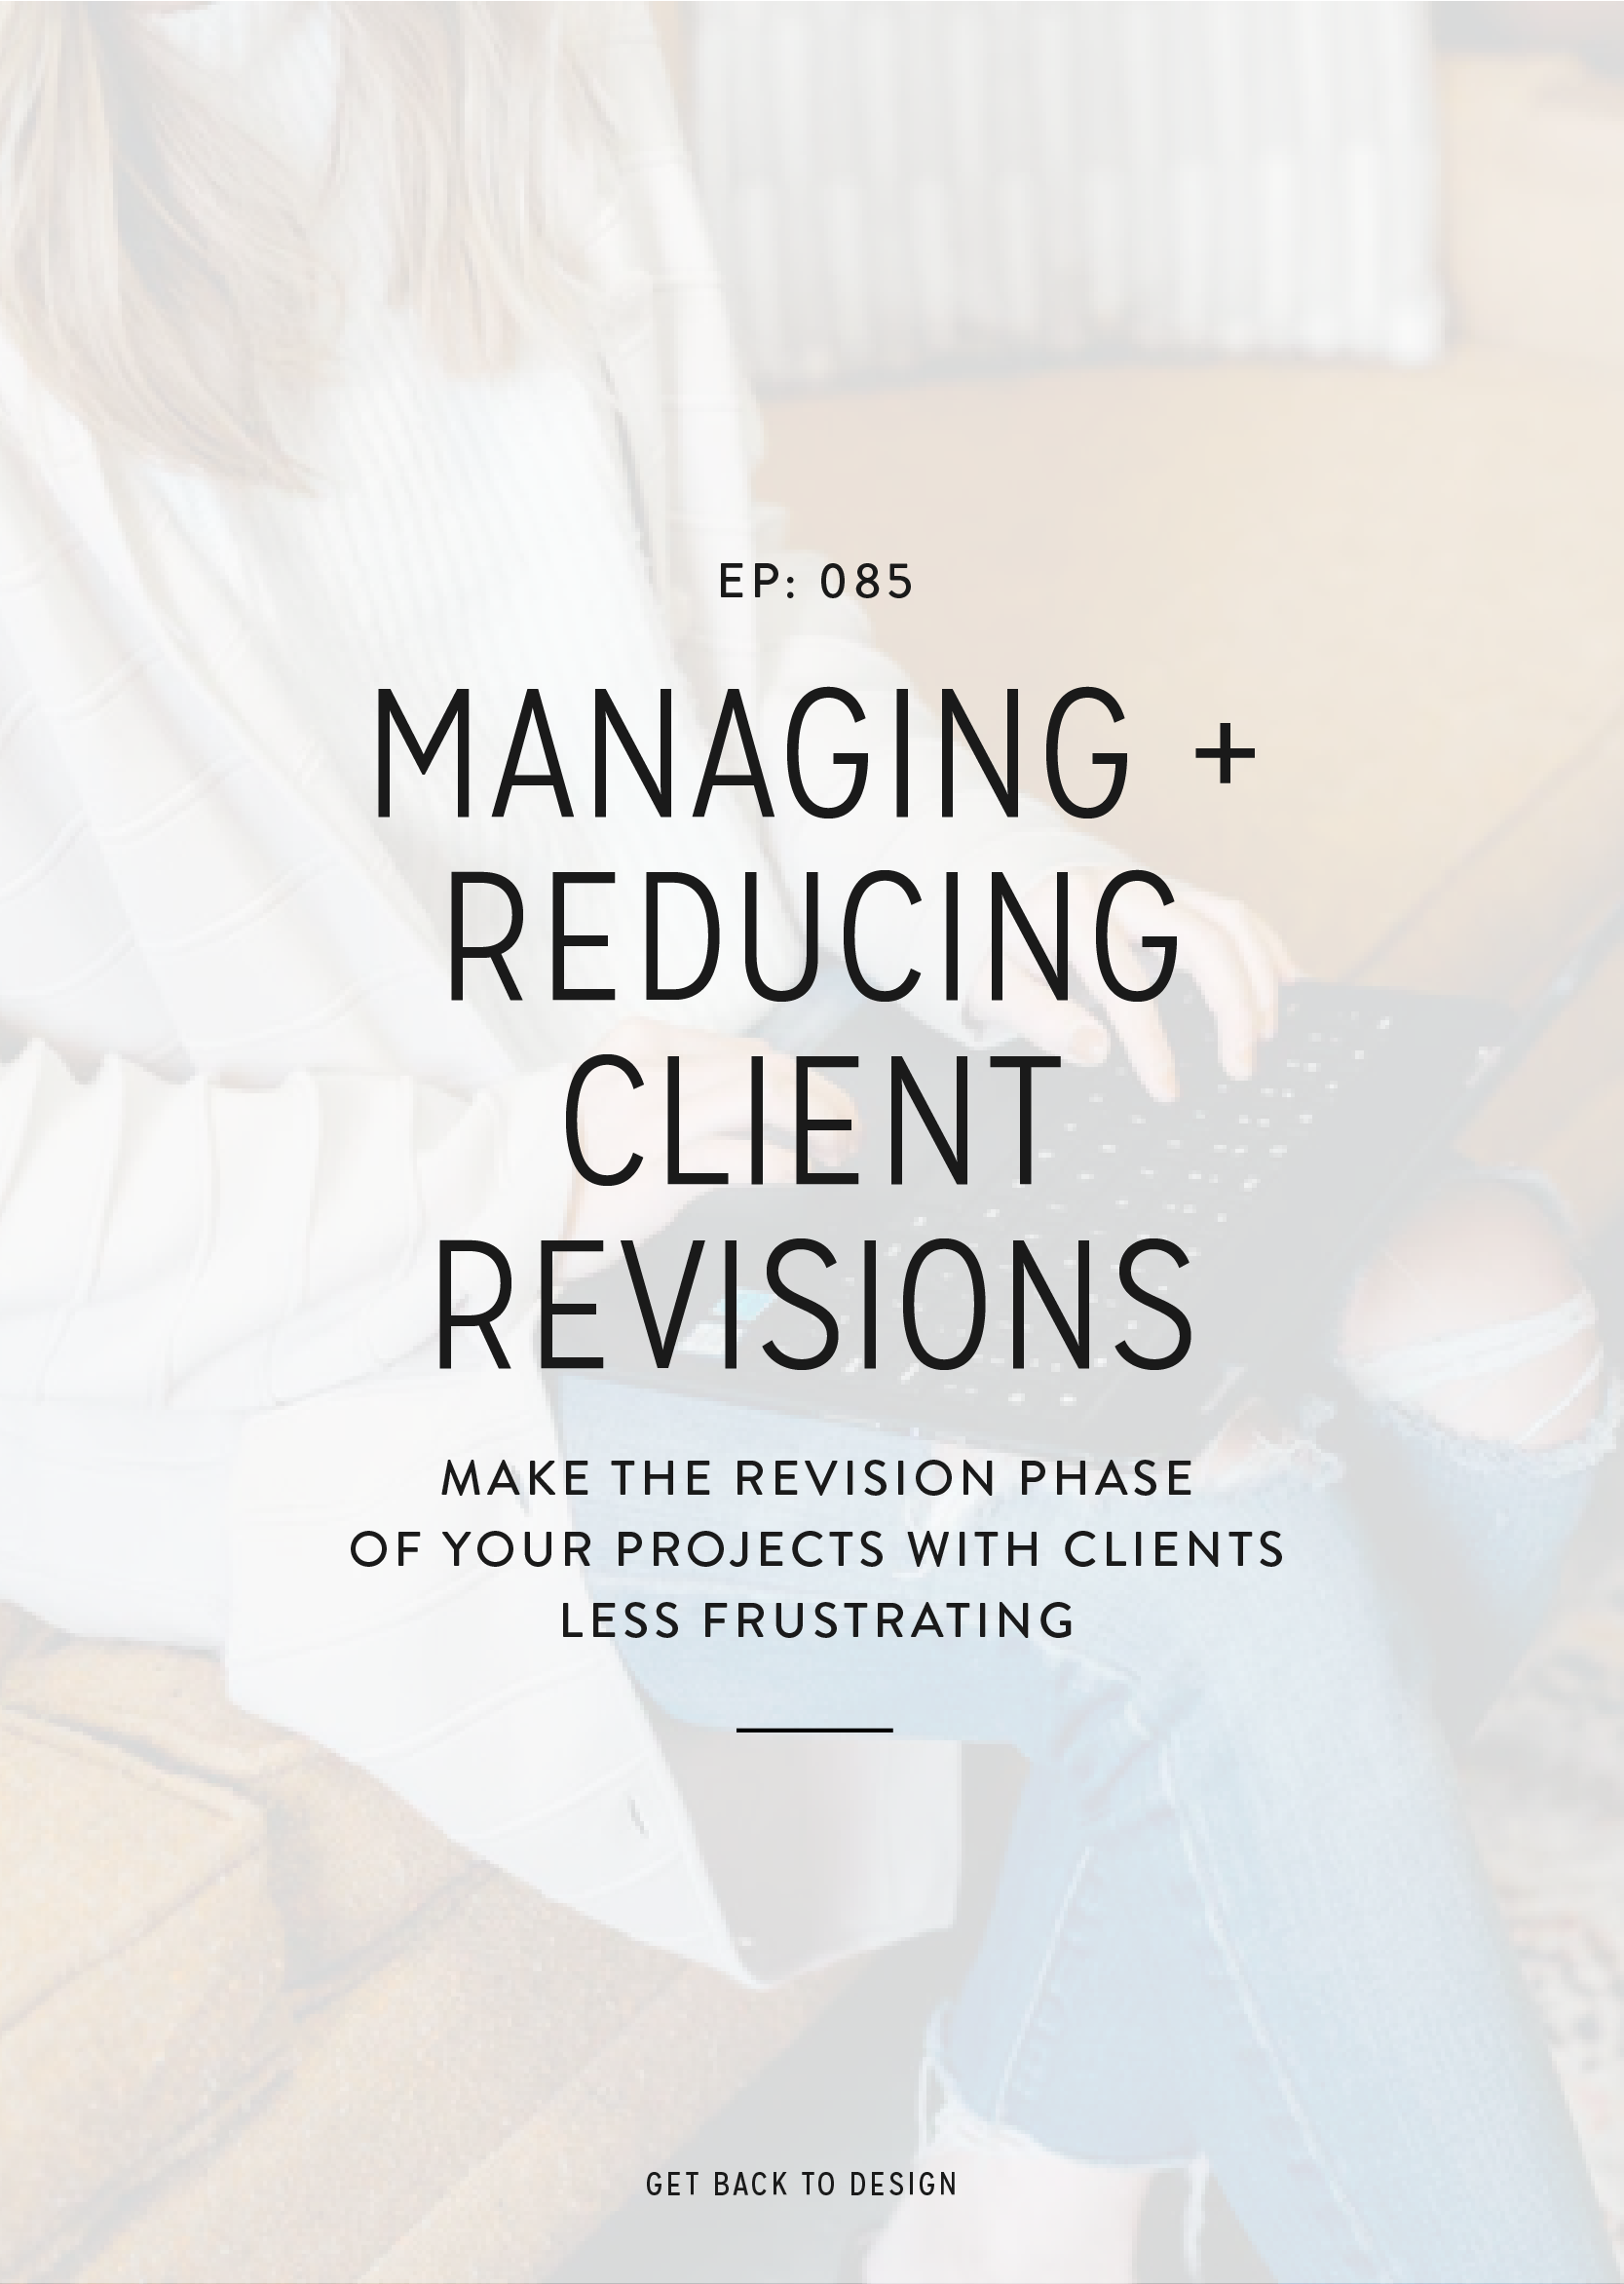 We know revisions are a big frustration for designers. Today we're covering how to manage revisions with clients and how you can reduce them.